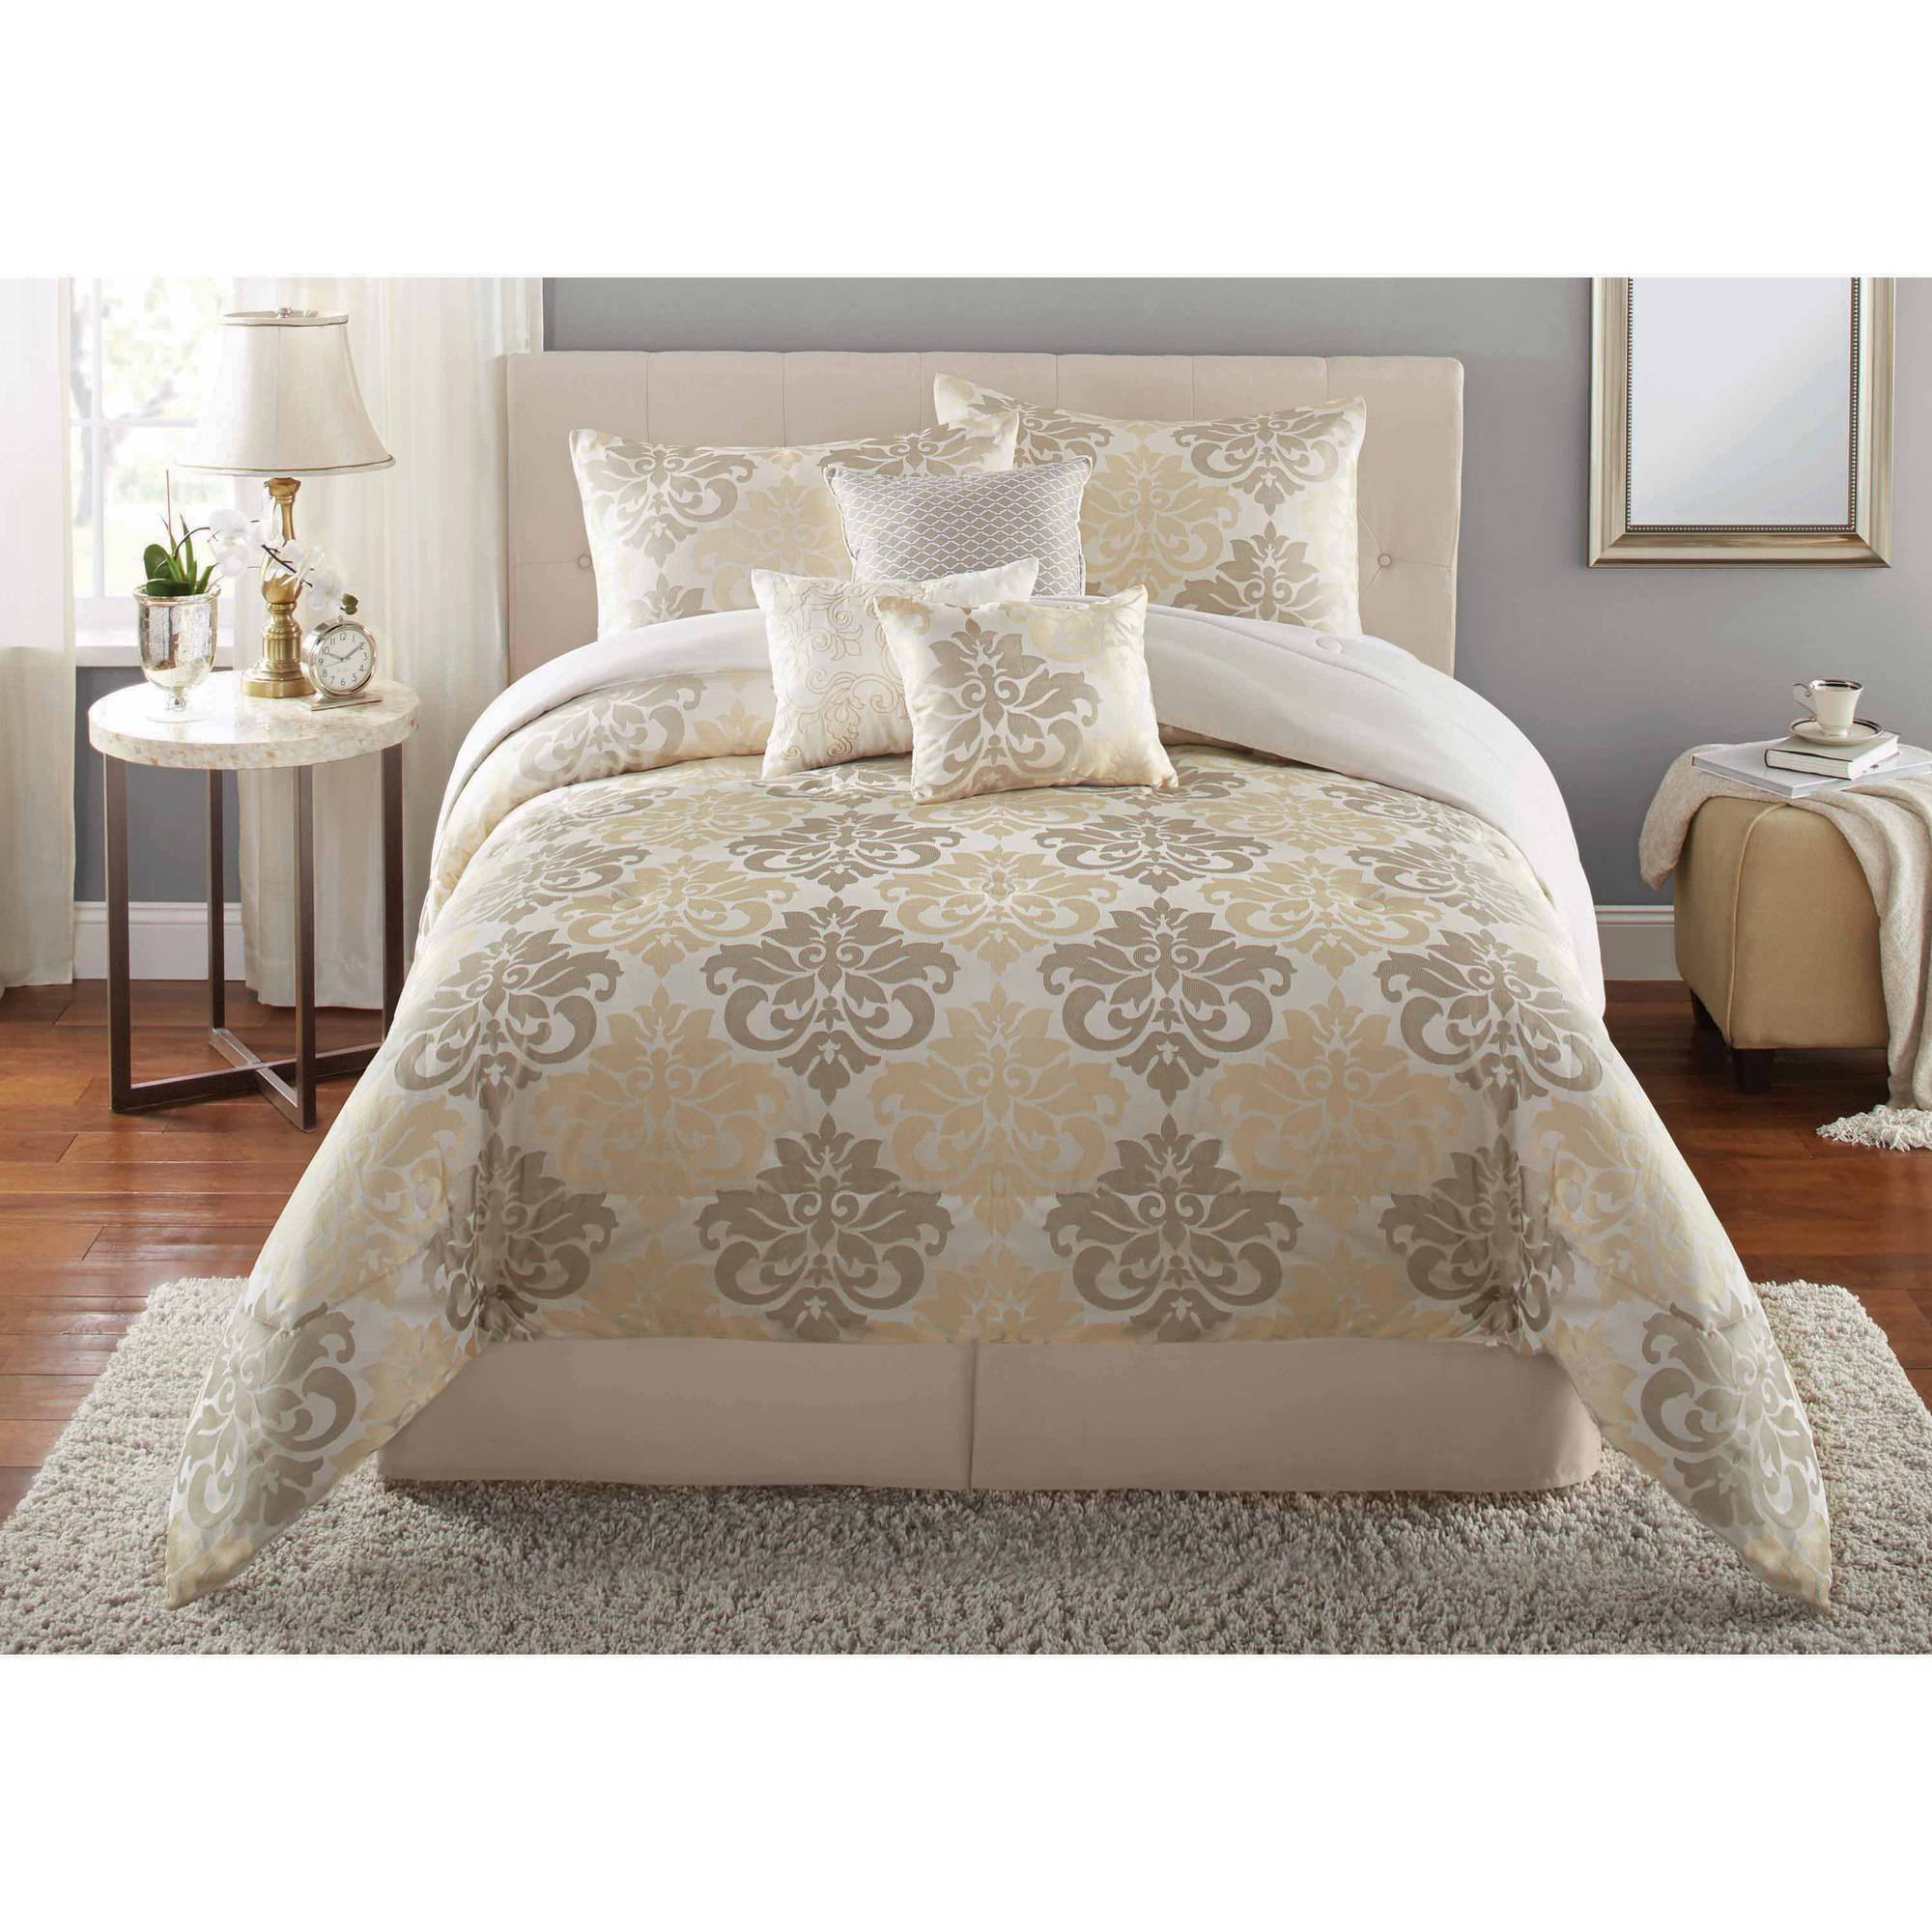 Comfy damask bedding for bed decorating ideas with damask bedding set and damask crib bedding